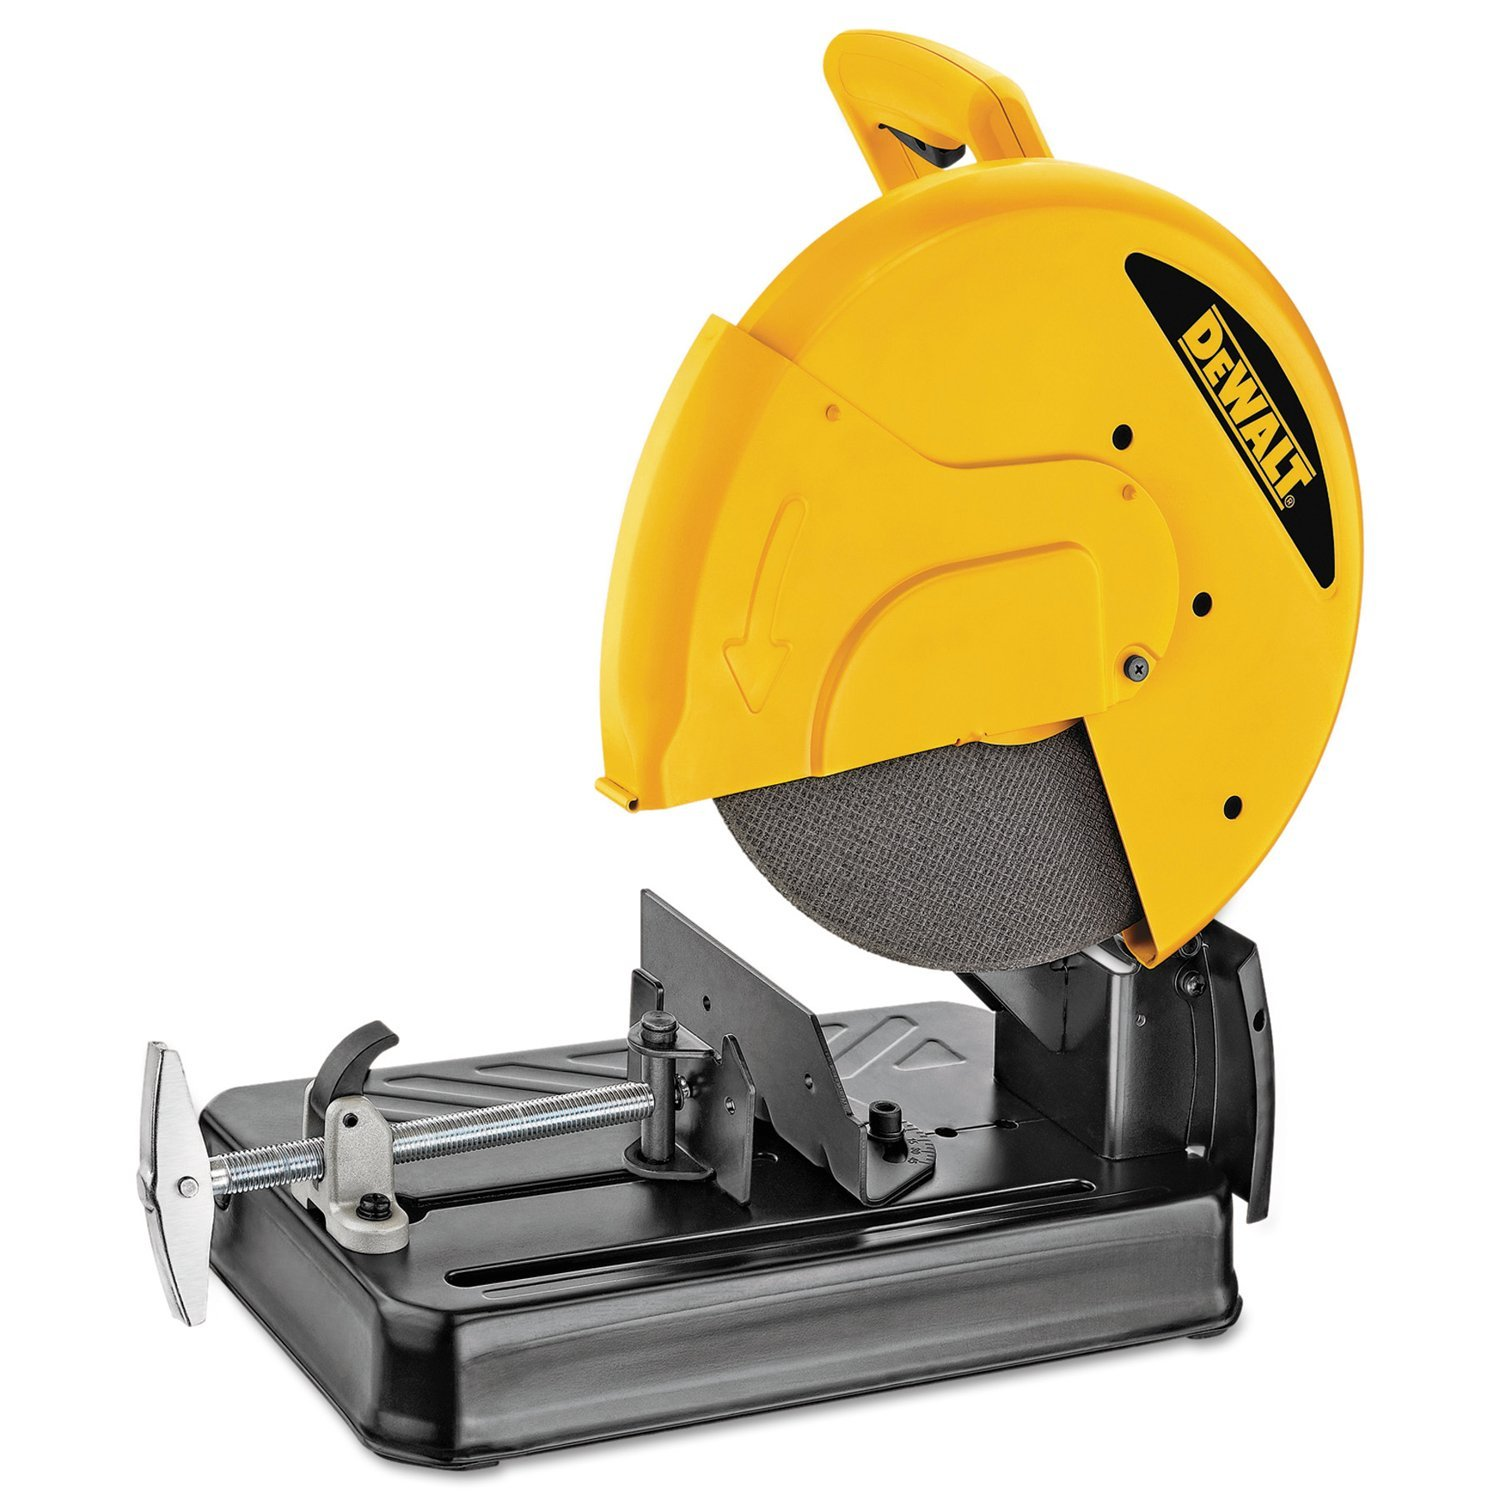 DEWALT 14-Inch (355mm) Abrasive Chop Saw